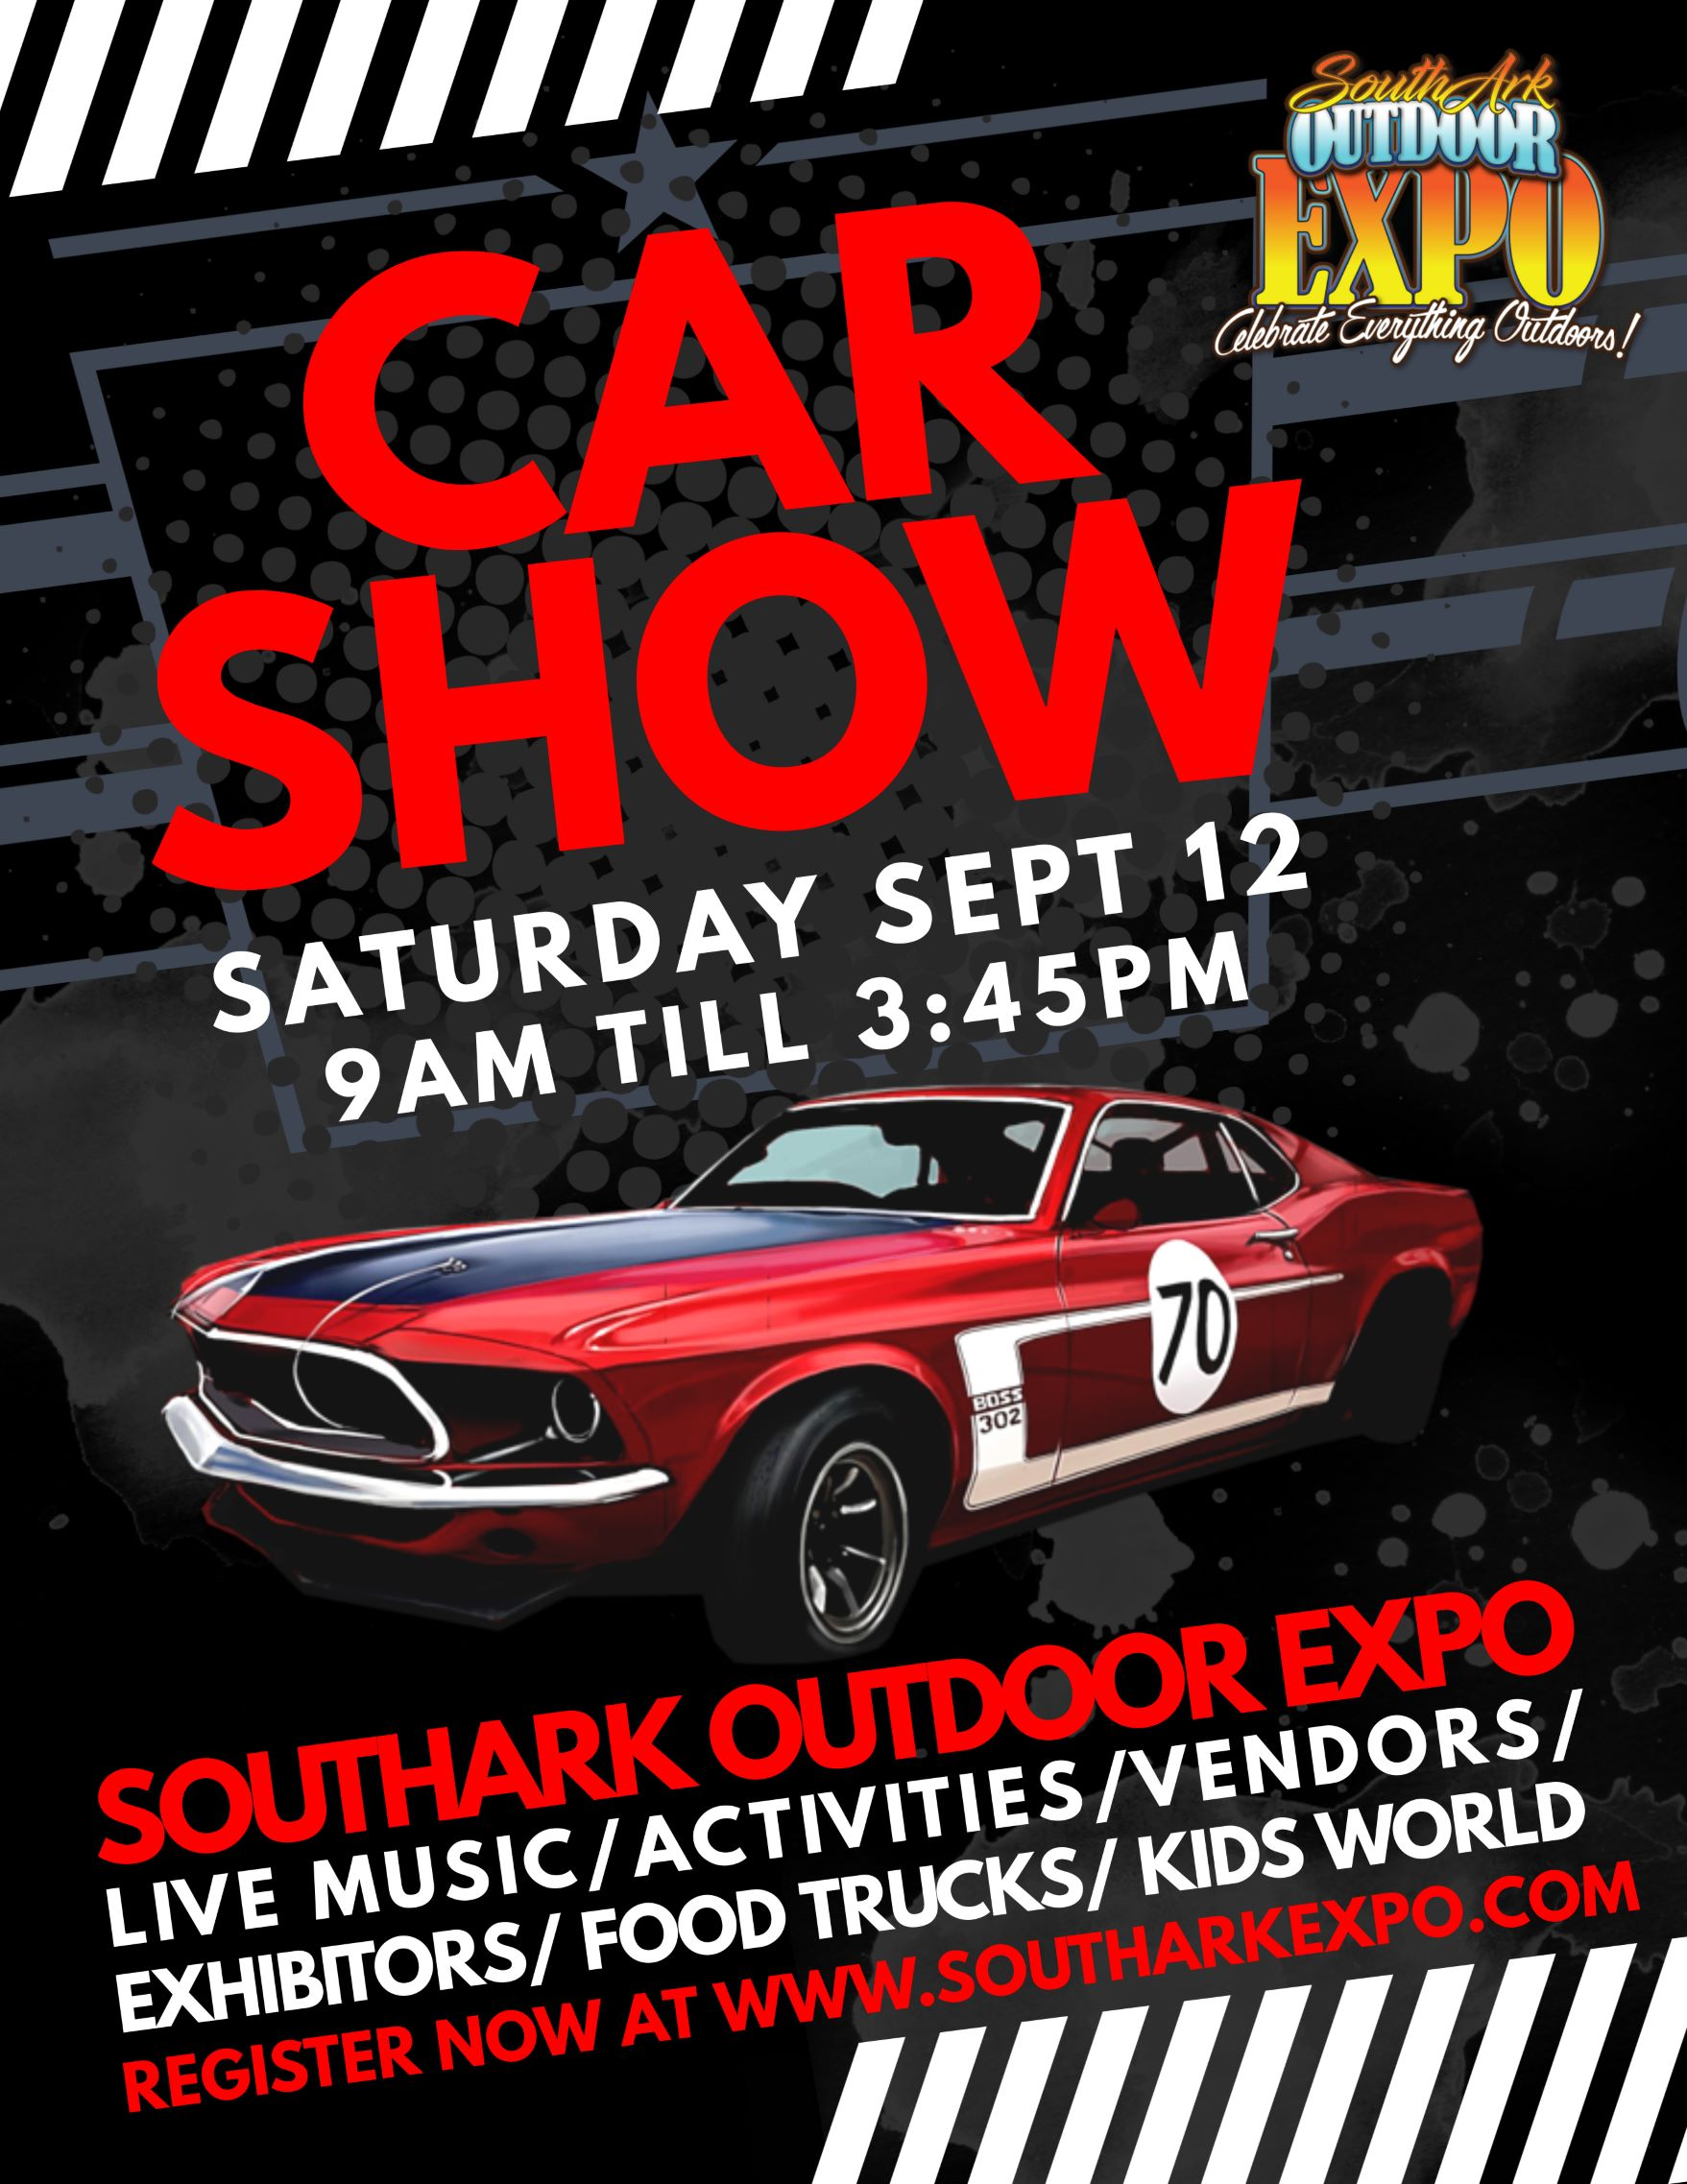 Expo Car Show Flyer RESIZED